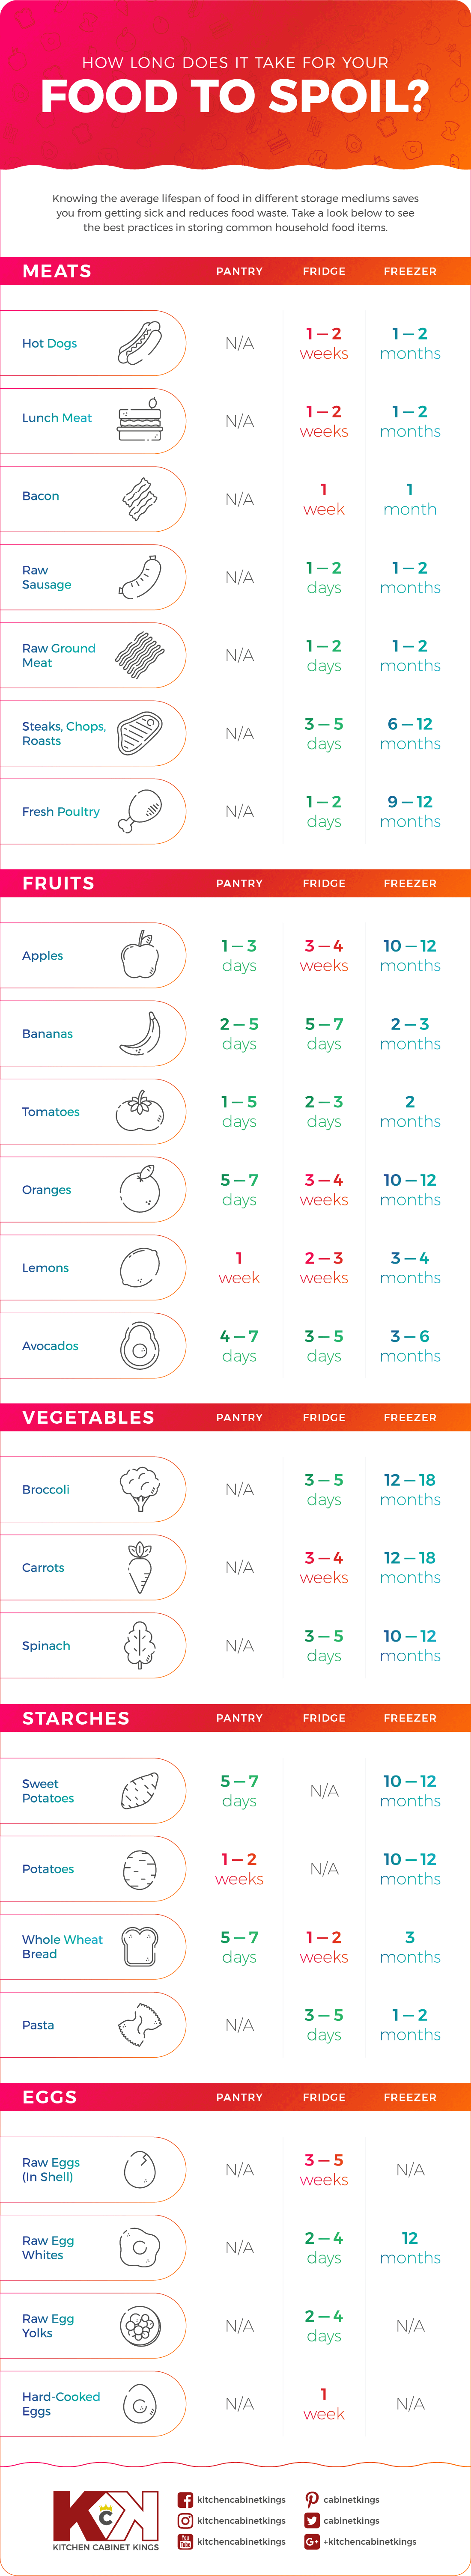 Don't lie to yourself, you know you have let things sit in the fridge until you can no longer tell what they were. It's ok, we've all done it! But don't waste your hard earned money on food by preventing food spoilage with this handy chart! #preventfoodspoilage #savemoneyongroceries #frugalmeals #mealplanning #properfoodstorage #preventingspoilage #howtostorefruitsandvegetables